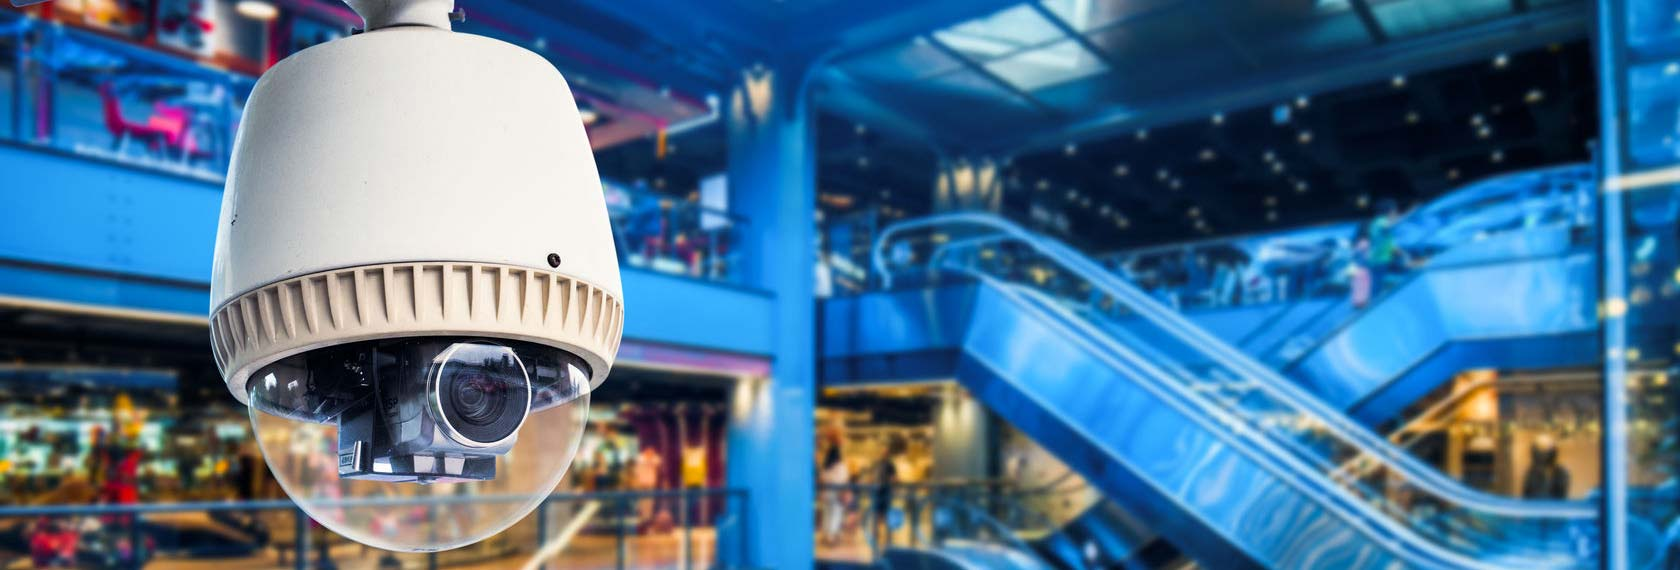 Radio Frequency Communications provide the latest CCTV HD installation IP technology.  Based in the South East, we install across the UK inc Slough, Basingstoke, Eastleigh, Farnborough, Guildford, Newbury, Southampton, Swindon, Winchester, Preston, Bolton, Wigan, Blackburn, Southport & Blackpool